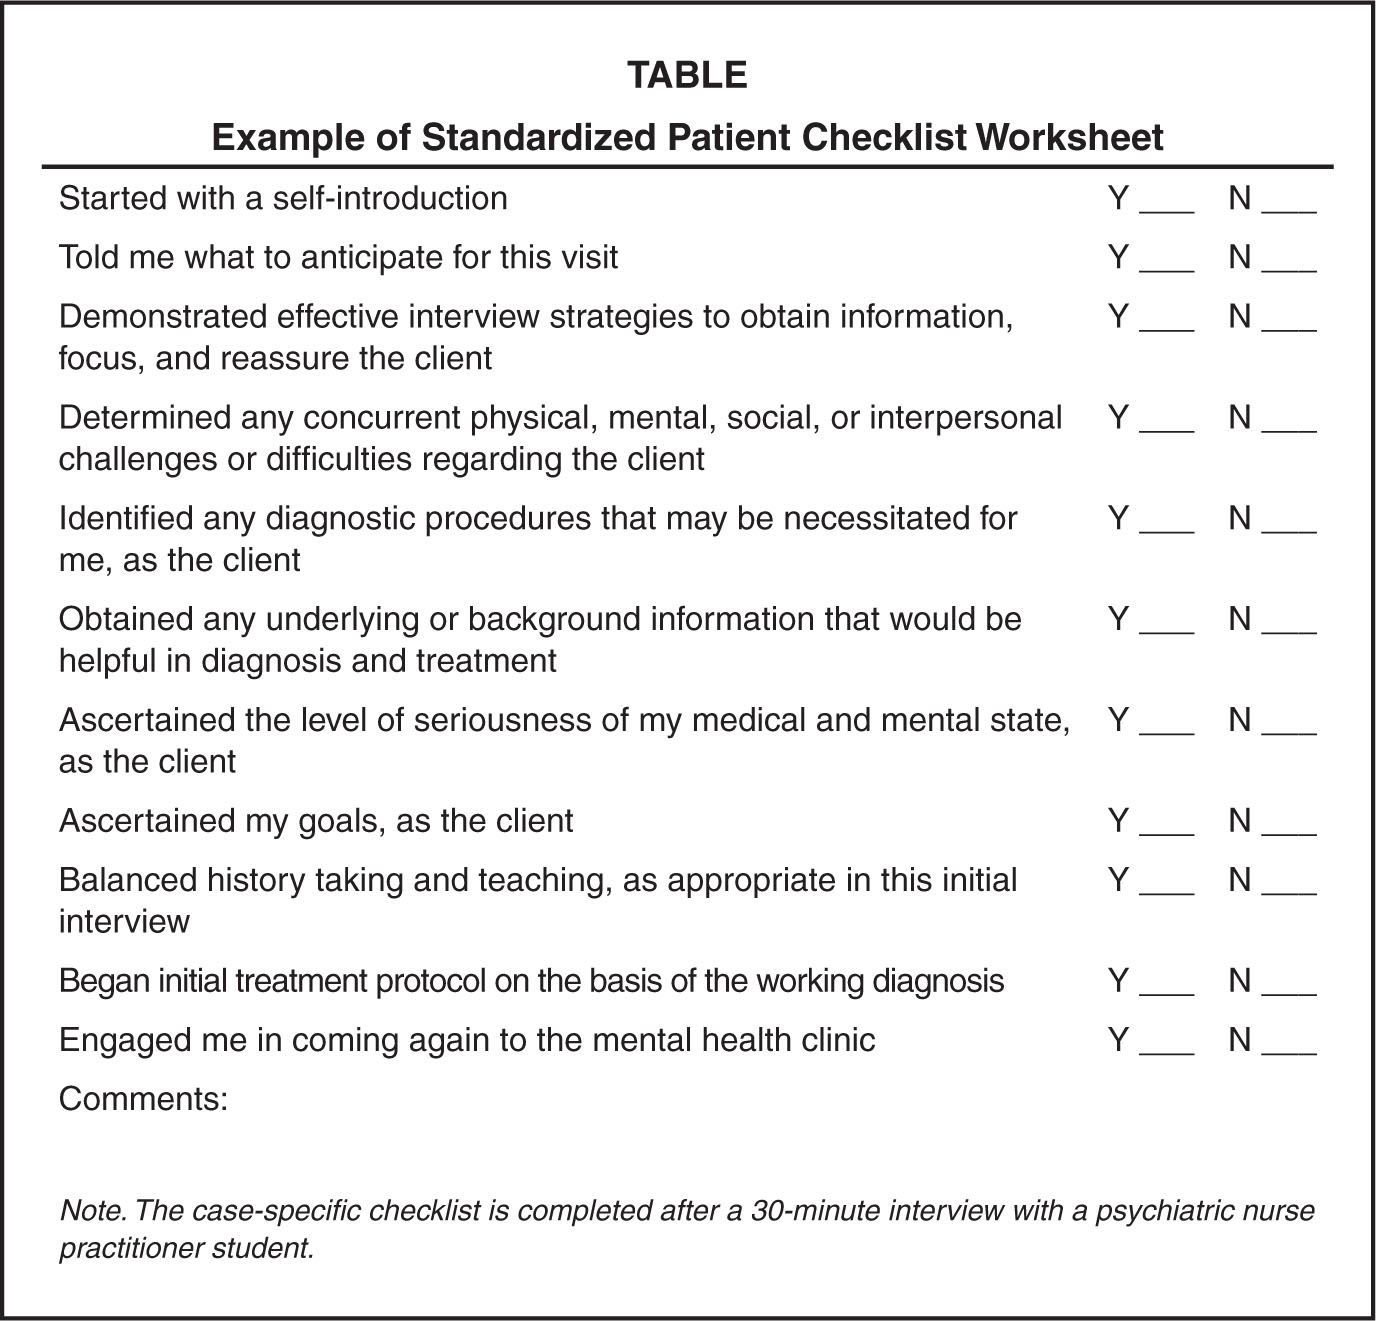 Standardized Patients A Creative Teaching Strategy For